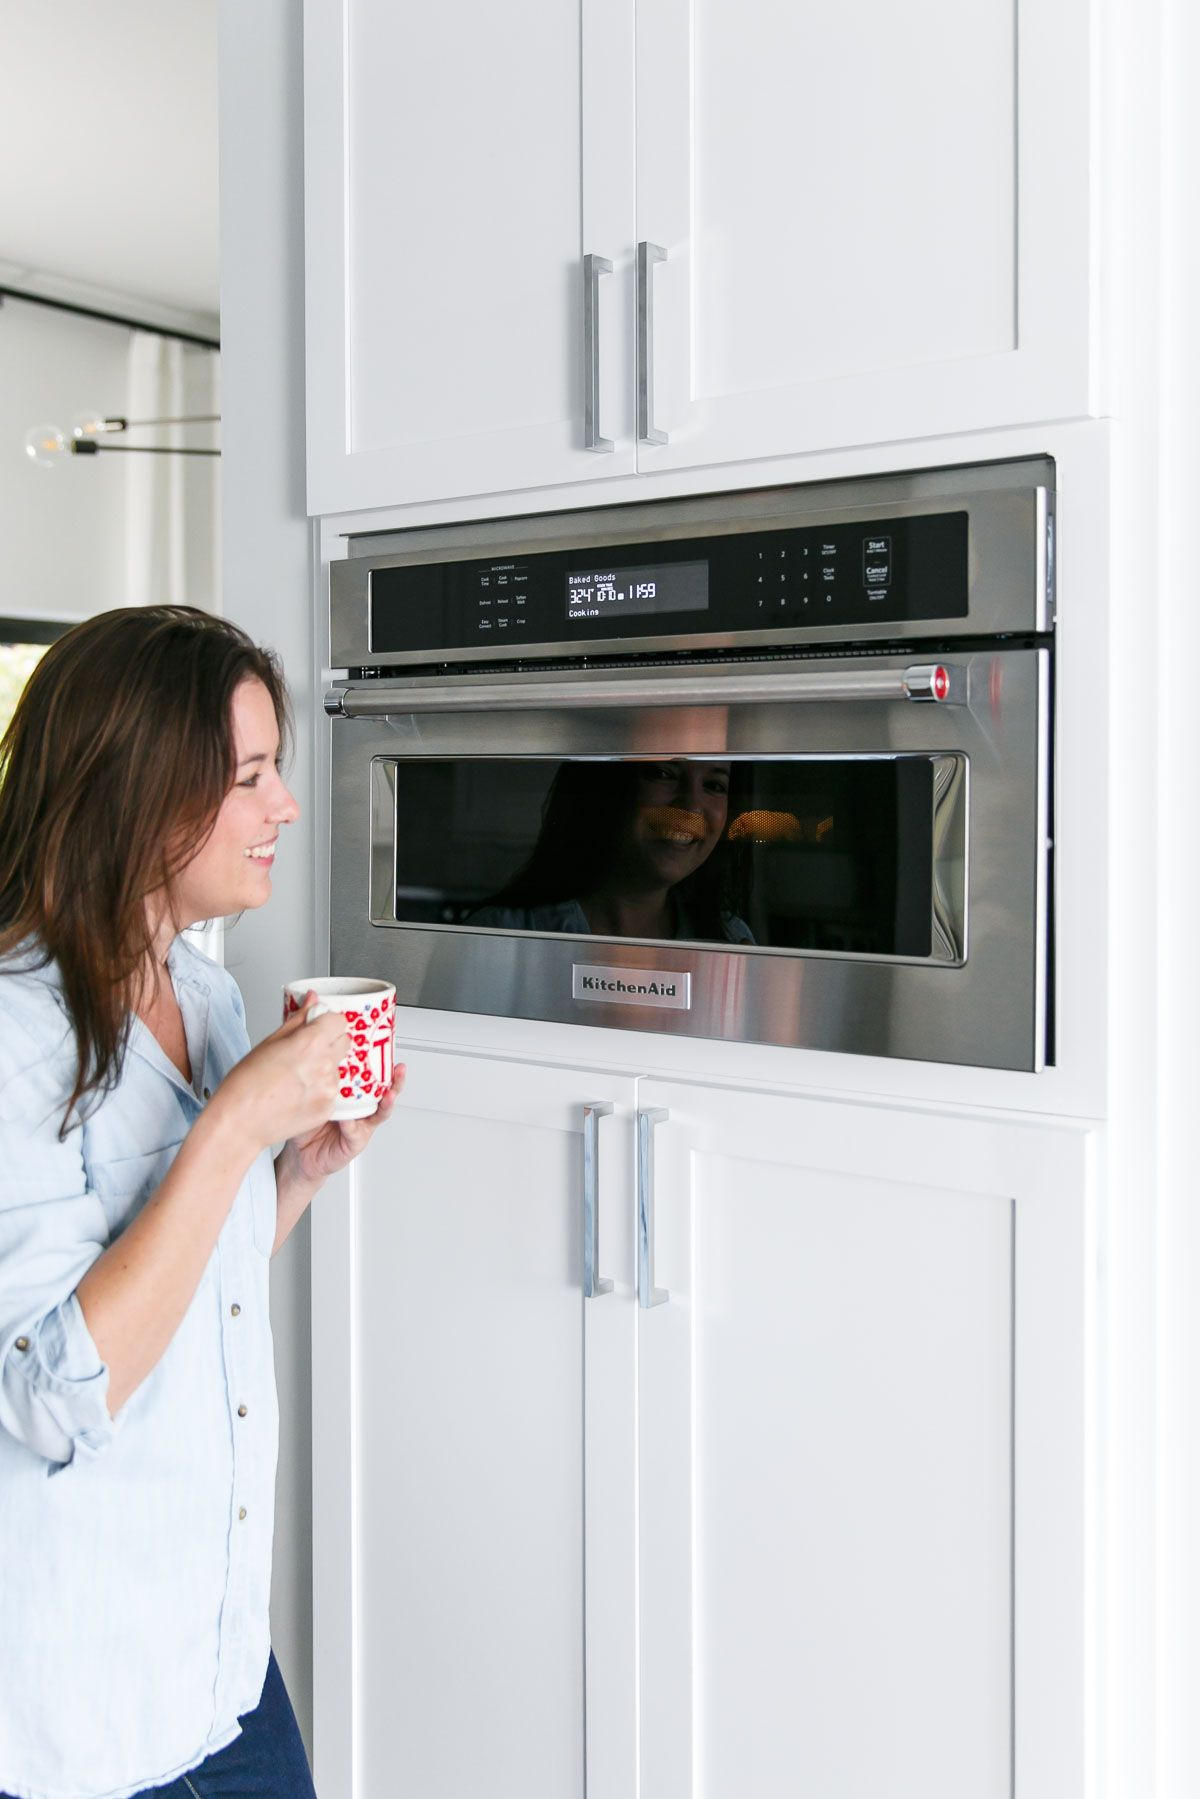 Did You Know Can Crisp Bacon To Your Preference Using The Kitchenaid Microwave Oven With Convection Cooking Loveandoliveoil Shares More Foods